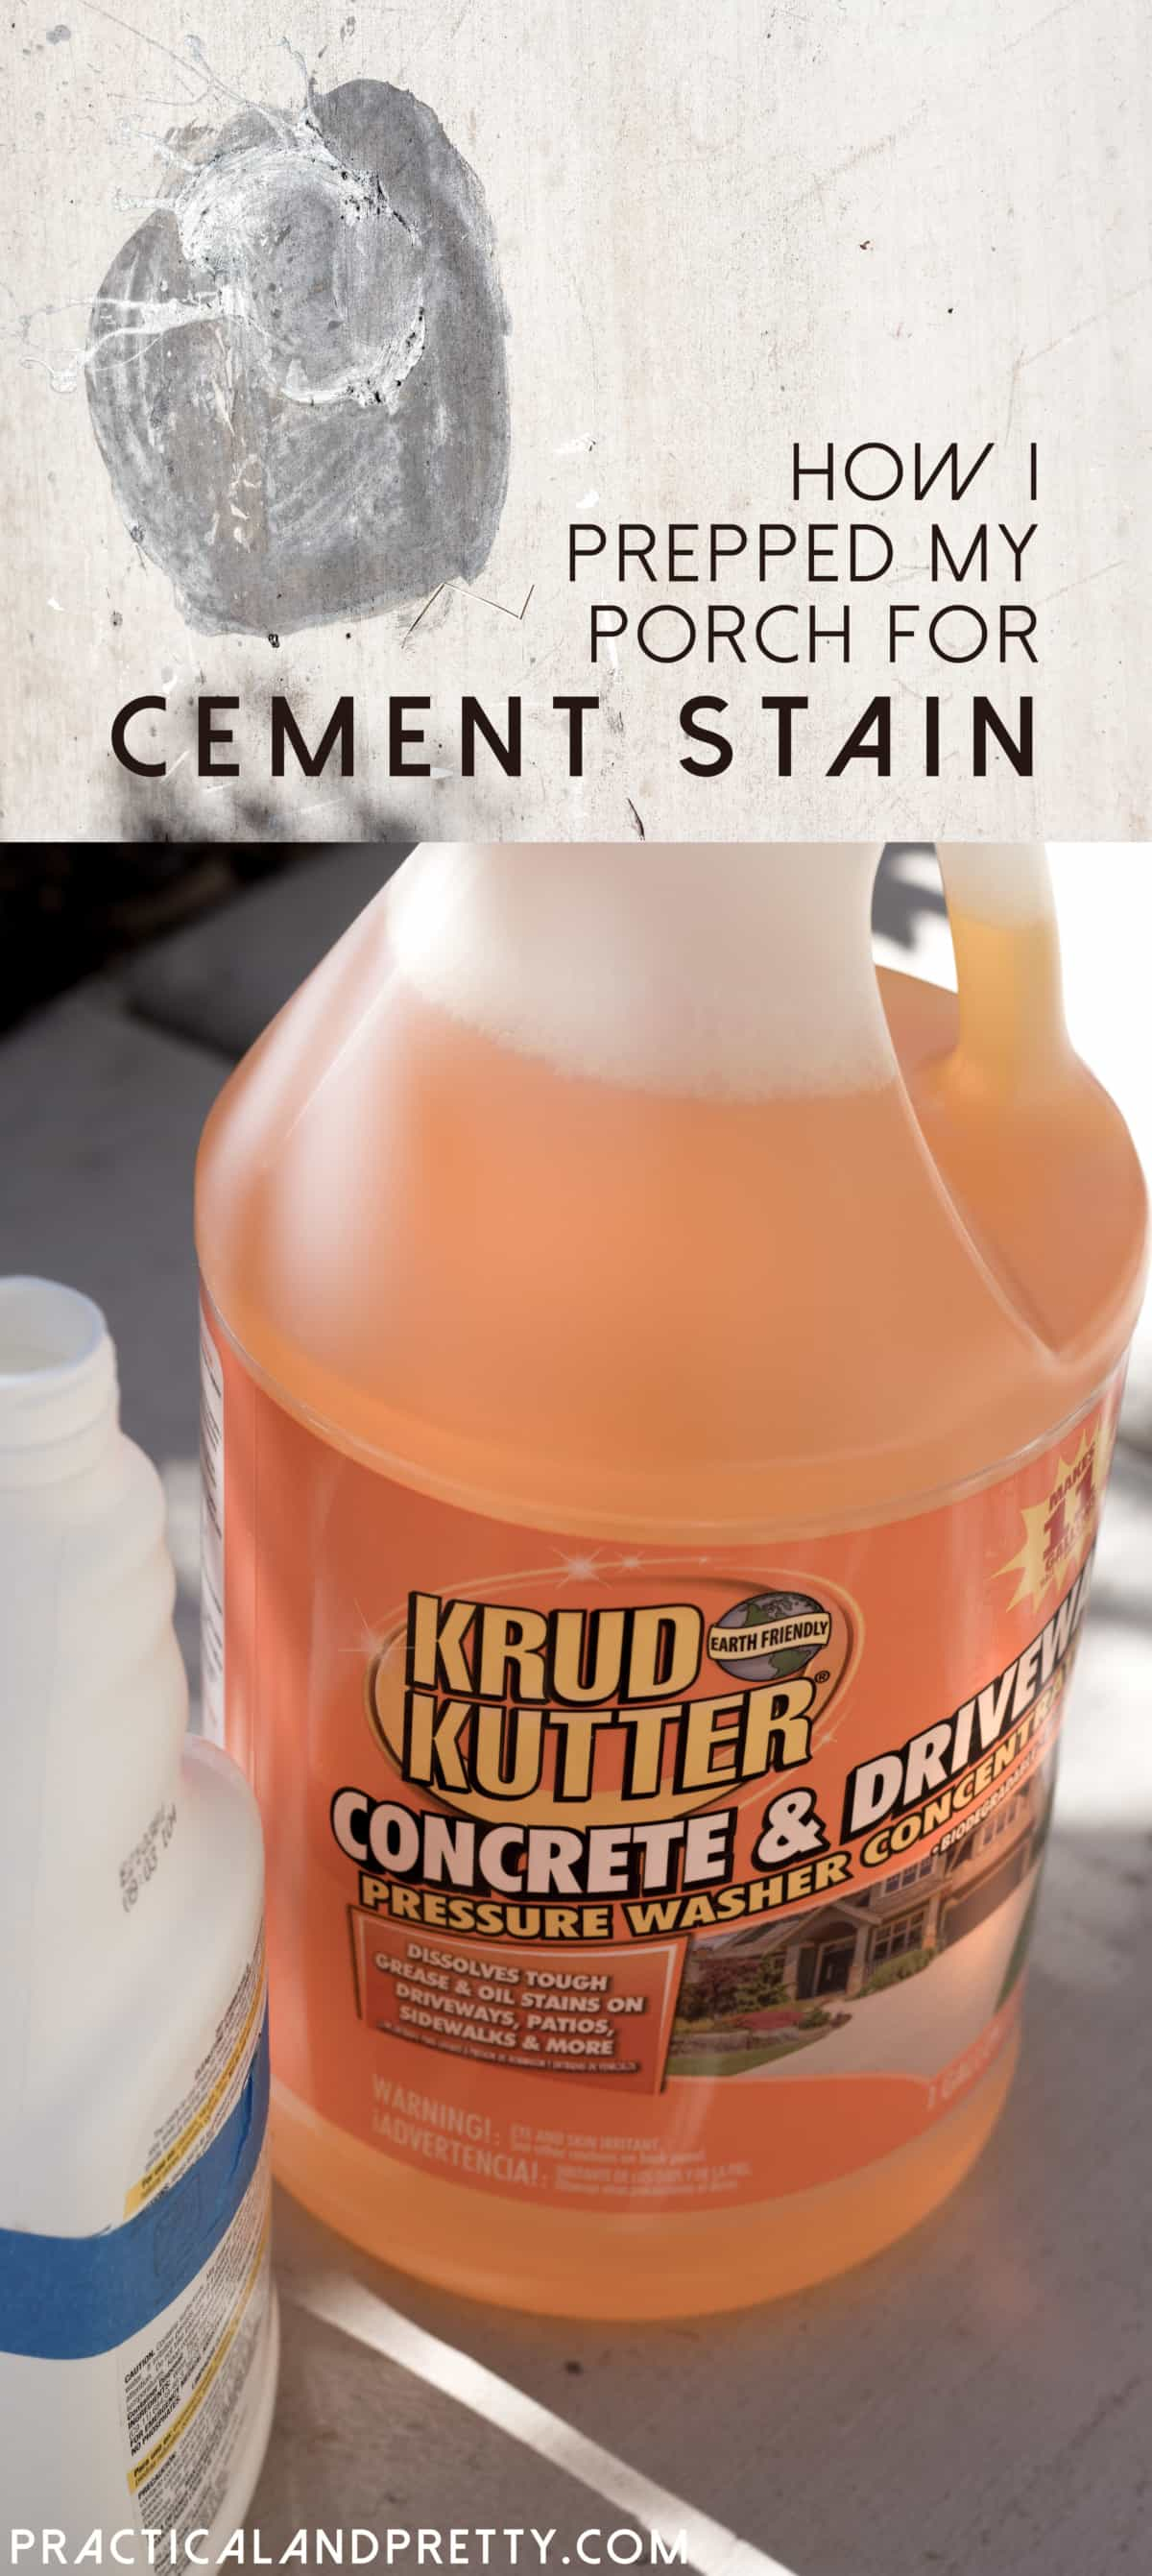 Cleaning your concrete patio isn't difficult and doesn't require a pressure washer with Krud Kutter! See how I prepped my cement for staining.